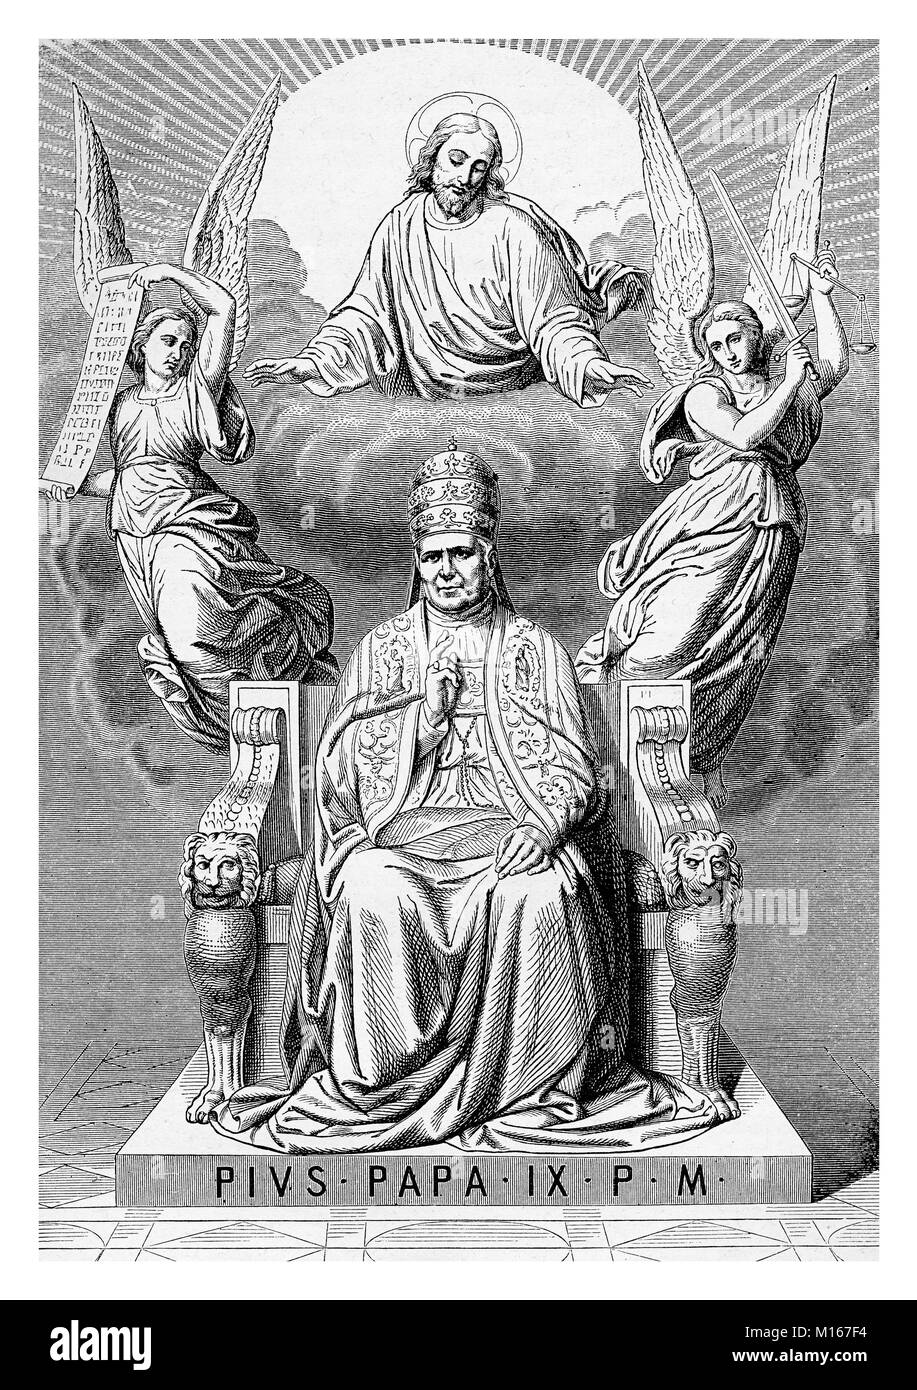 Allegorical apotheosis of Pope Pius IX on his throne, surrounded by angels and Jesus Christ, vintage engraving - Stock Image